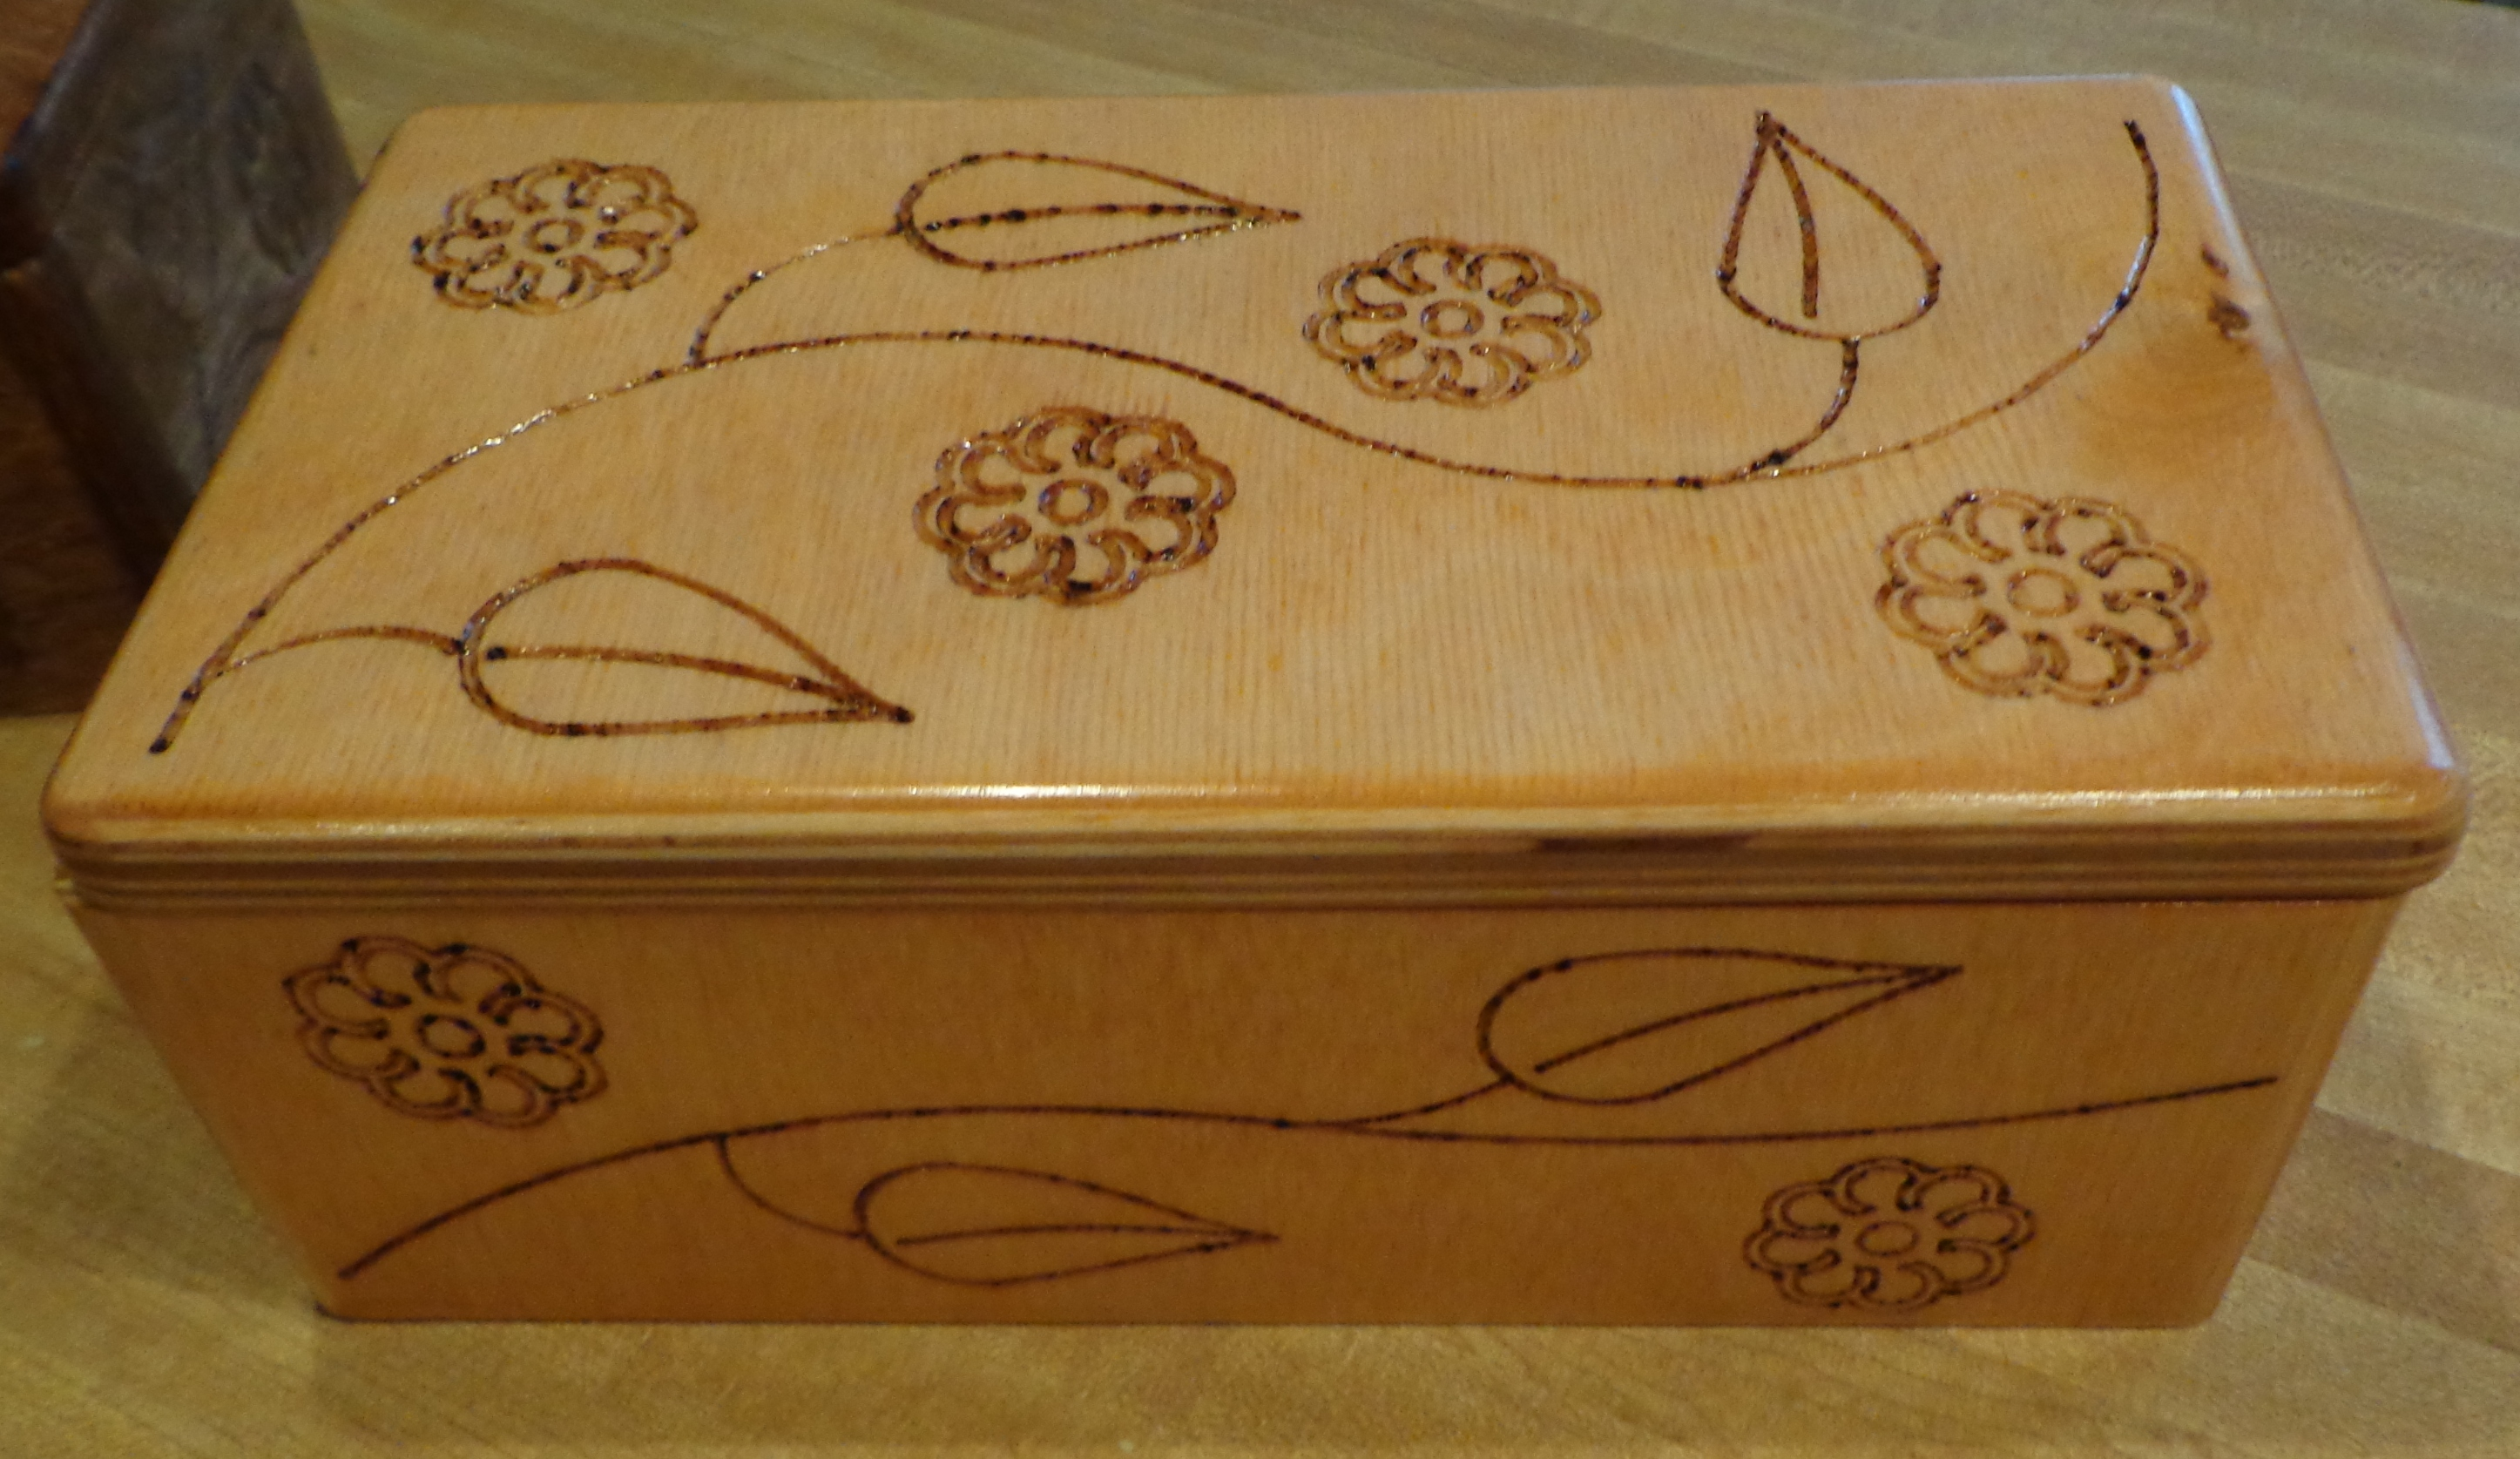 Cnc Router Jewelry Box Plans Best ideas about wooden jewelry boxes on